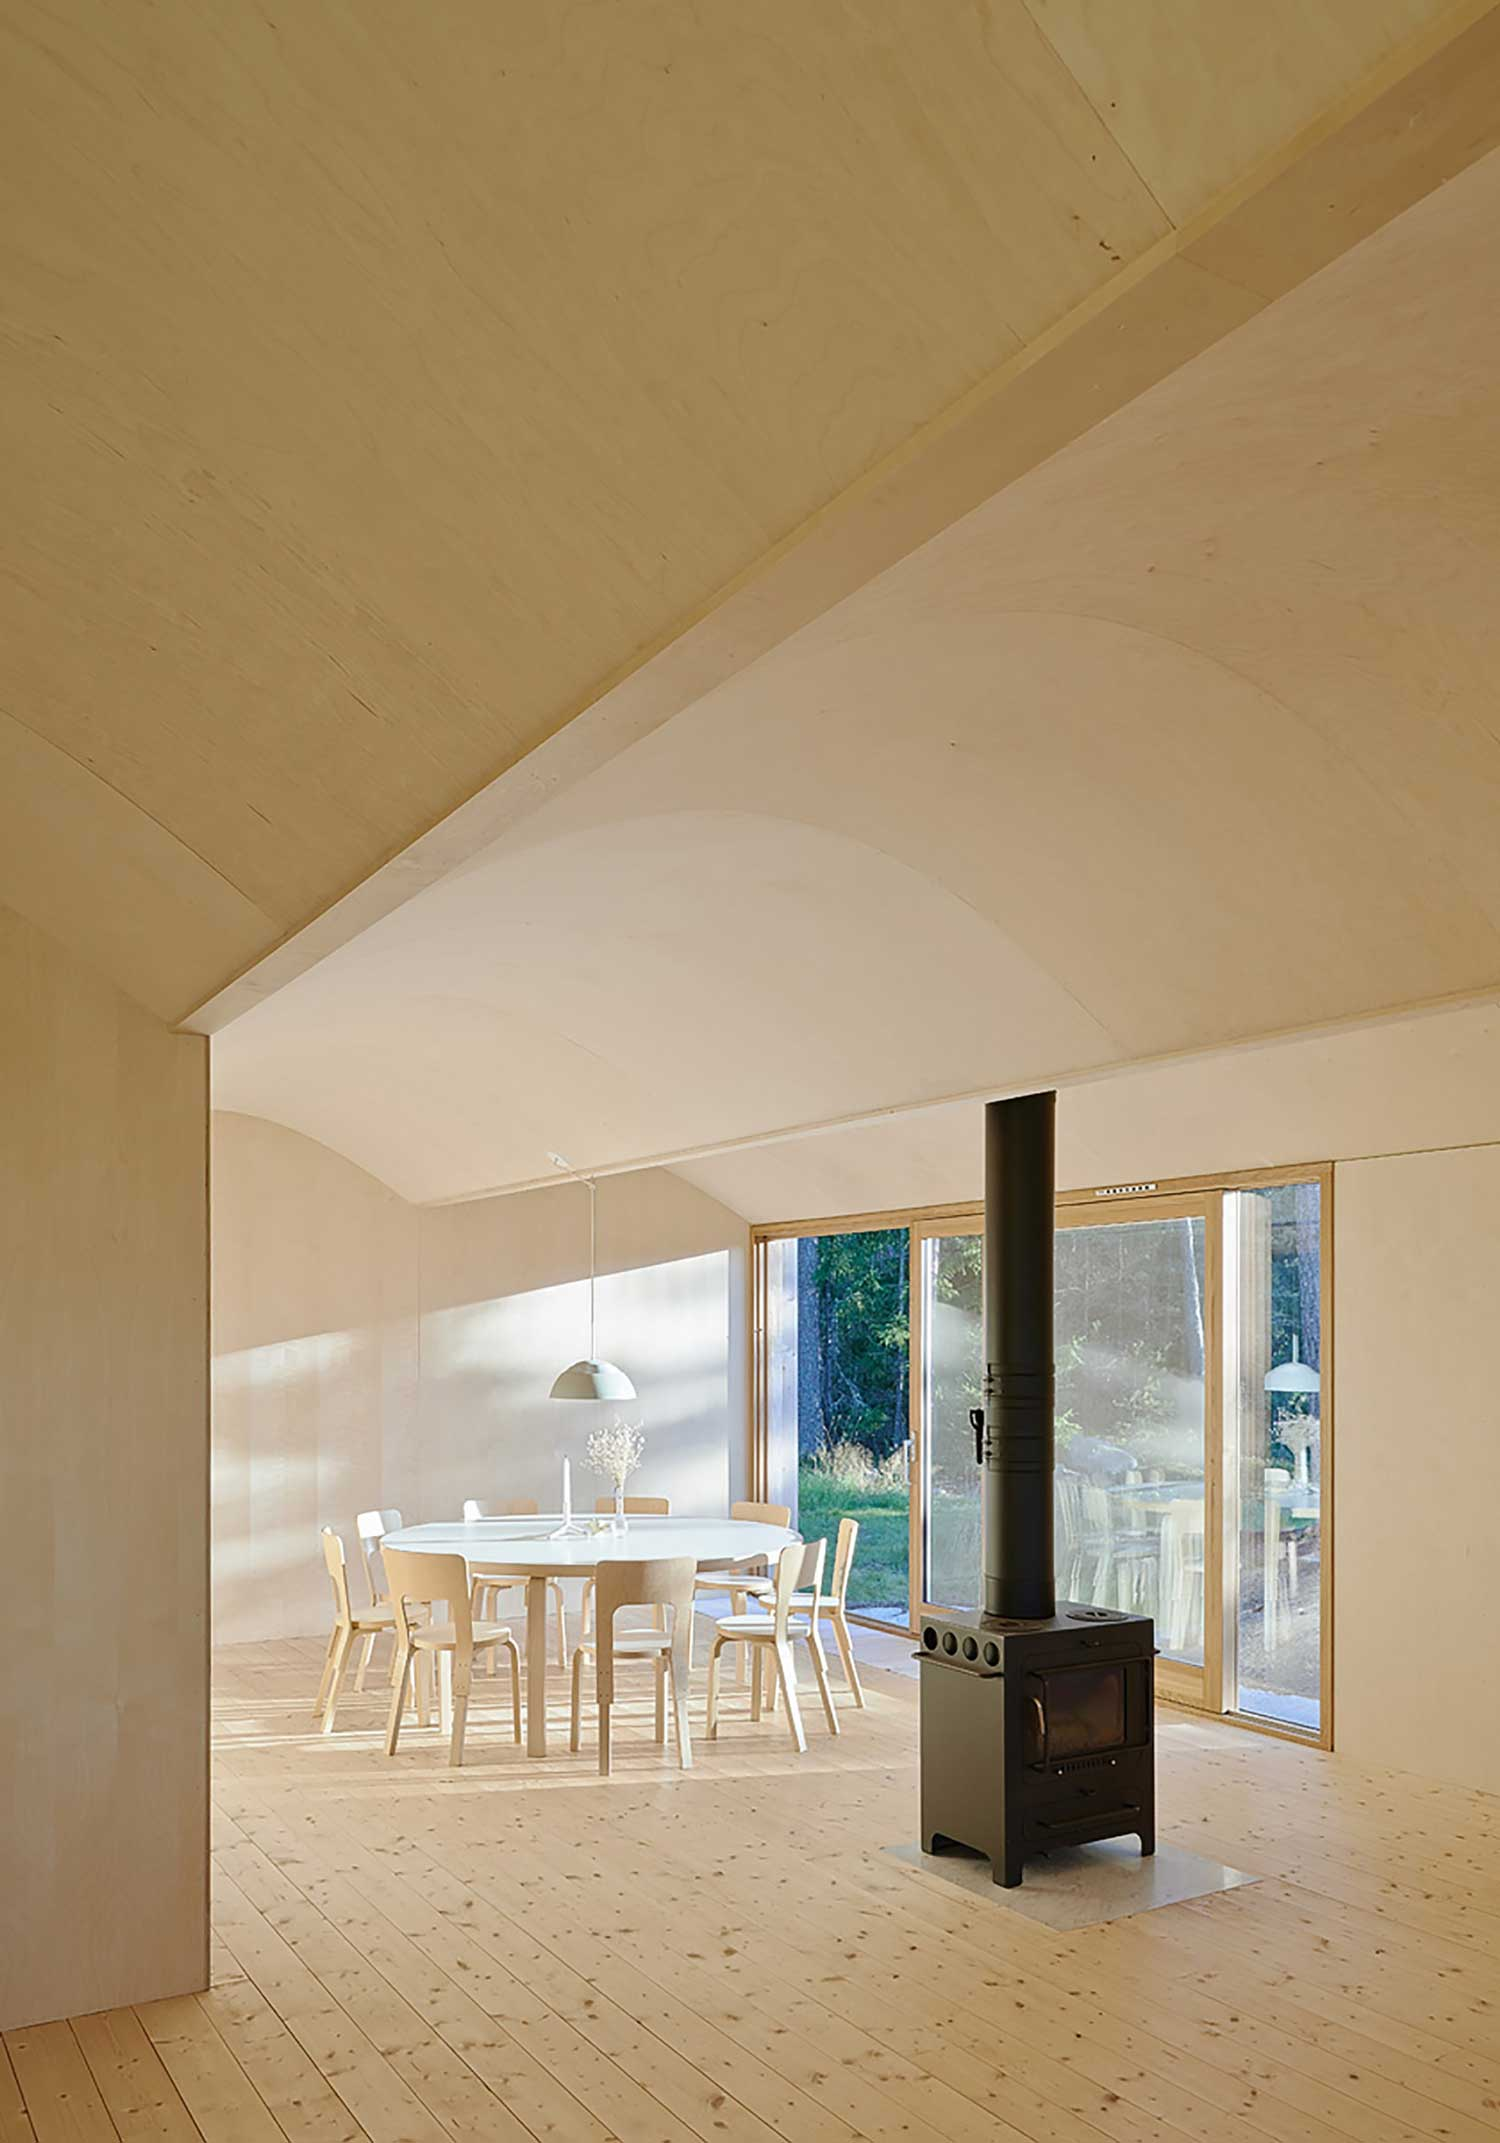 House Husarö in Stockholm, Sweden by Tham & Videgard Arkitekter | Yellowtrace